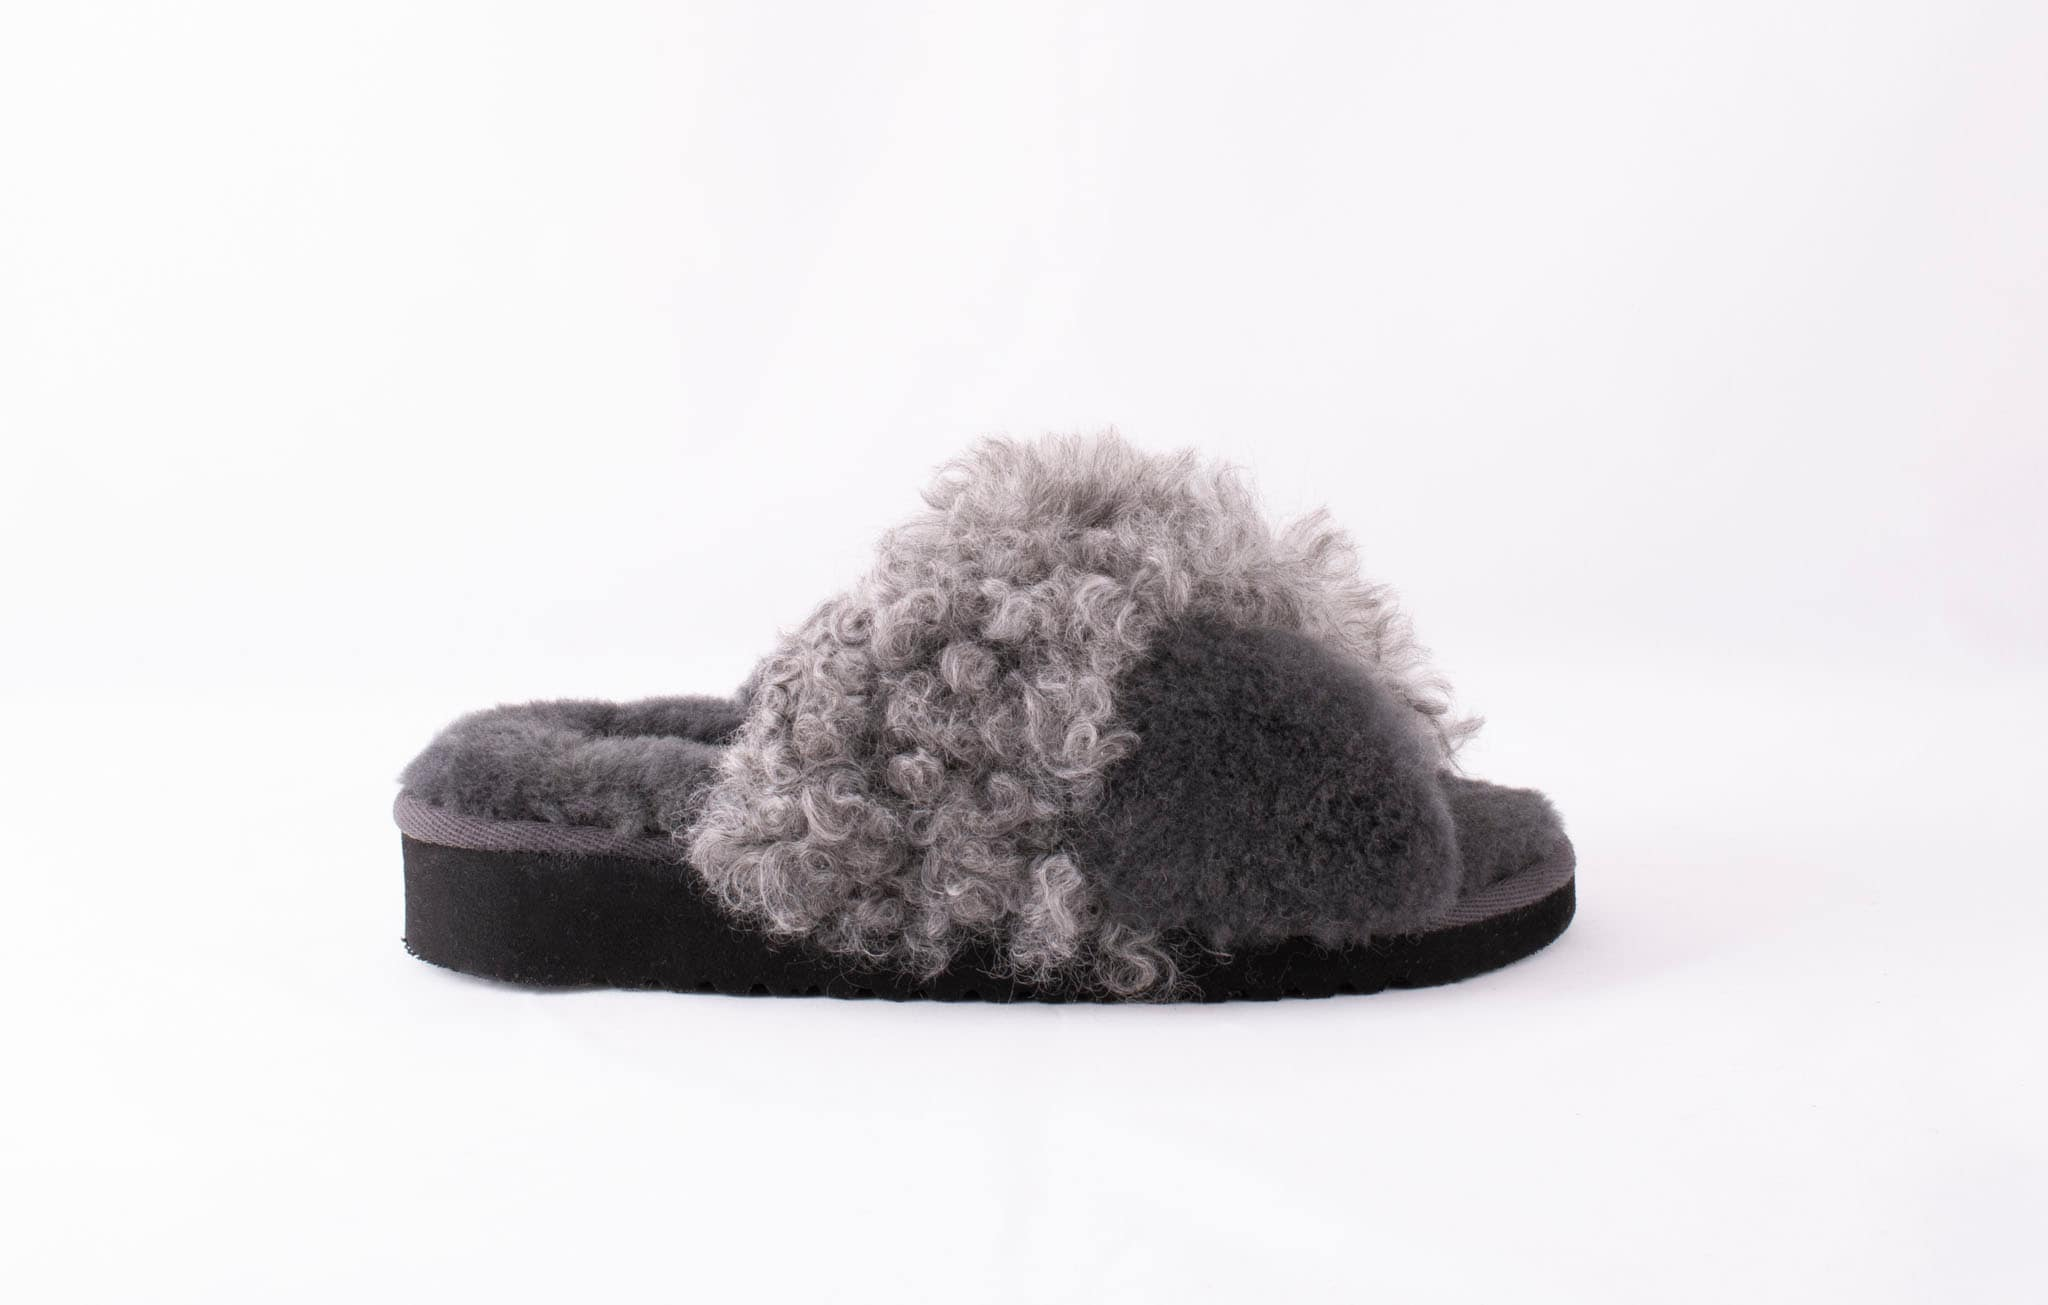 Millie sheepskin slippers